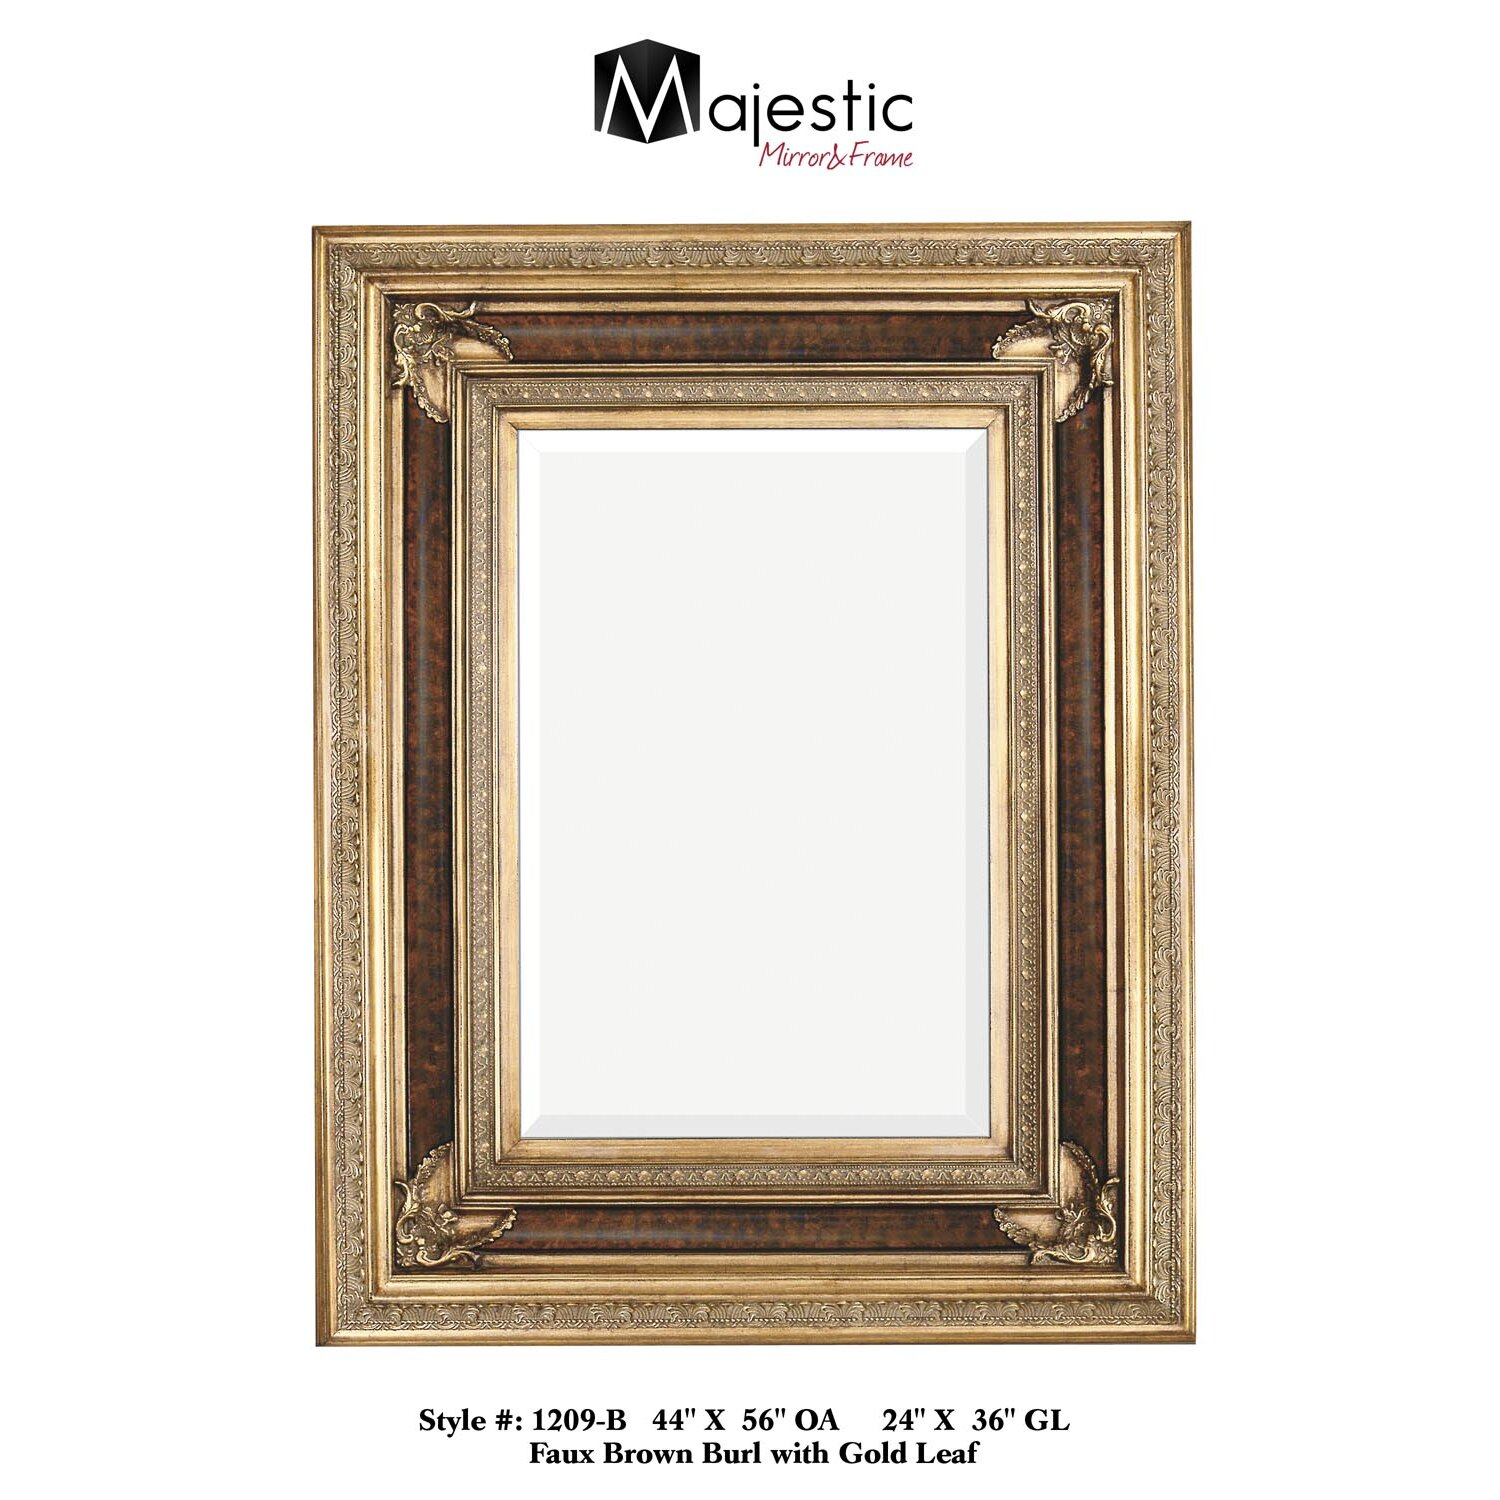 Majestic mirror rectangular antique wood framed for Glass mirrors for walls